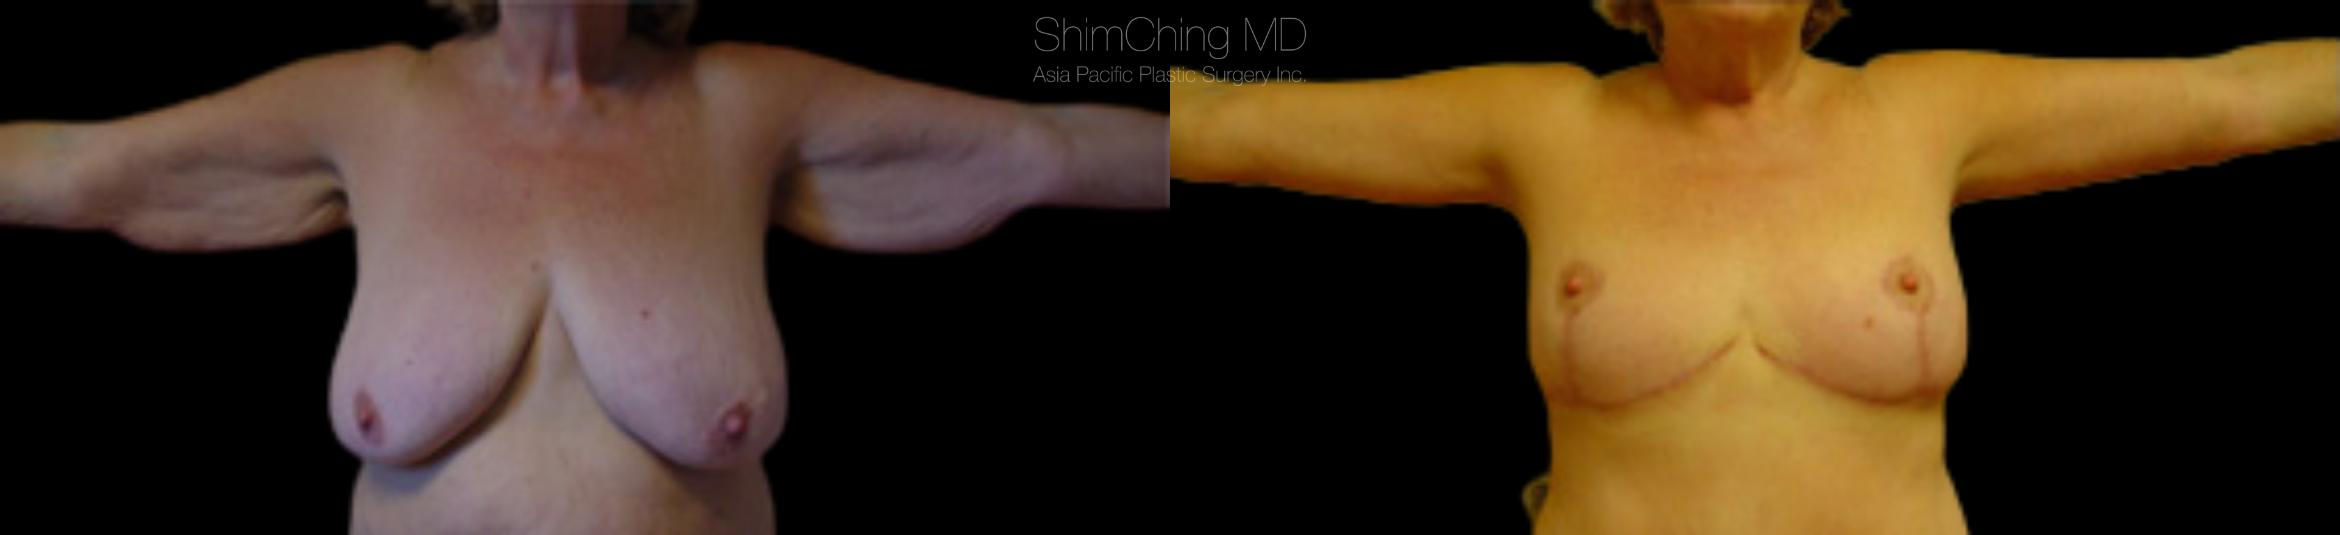 Homepage Featured Cases Case 98 Before & After Front | Honolulu, HI | Shim Ching, MD: Asia Pacific Plastic Surgery